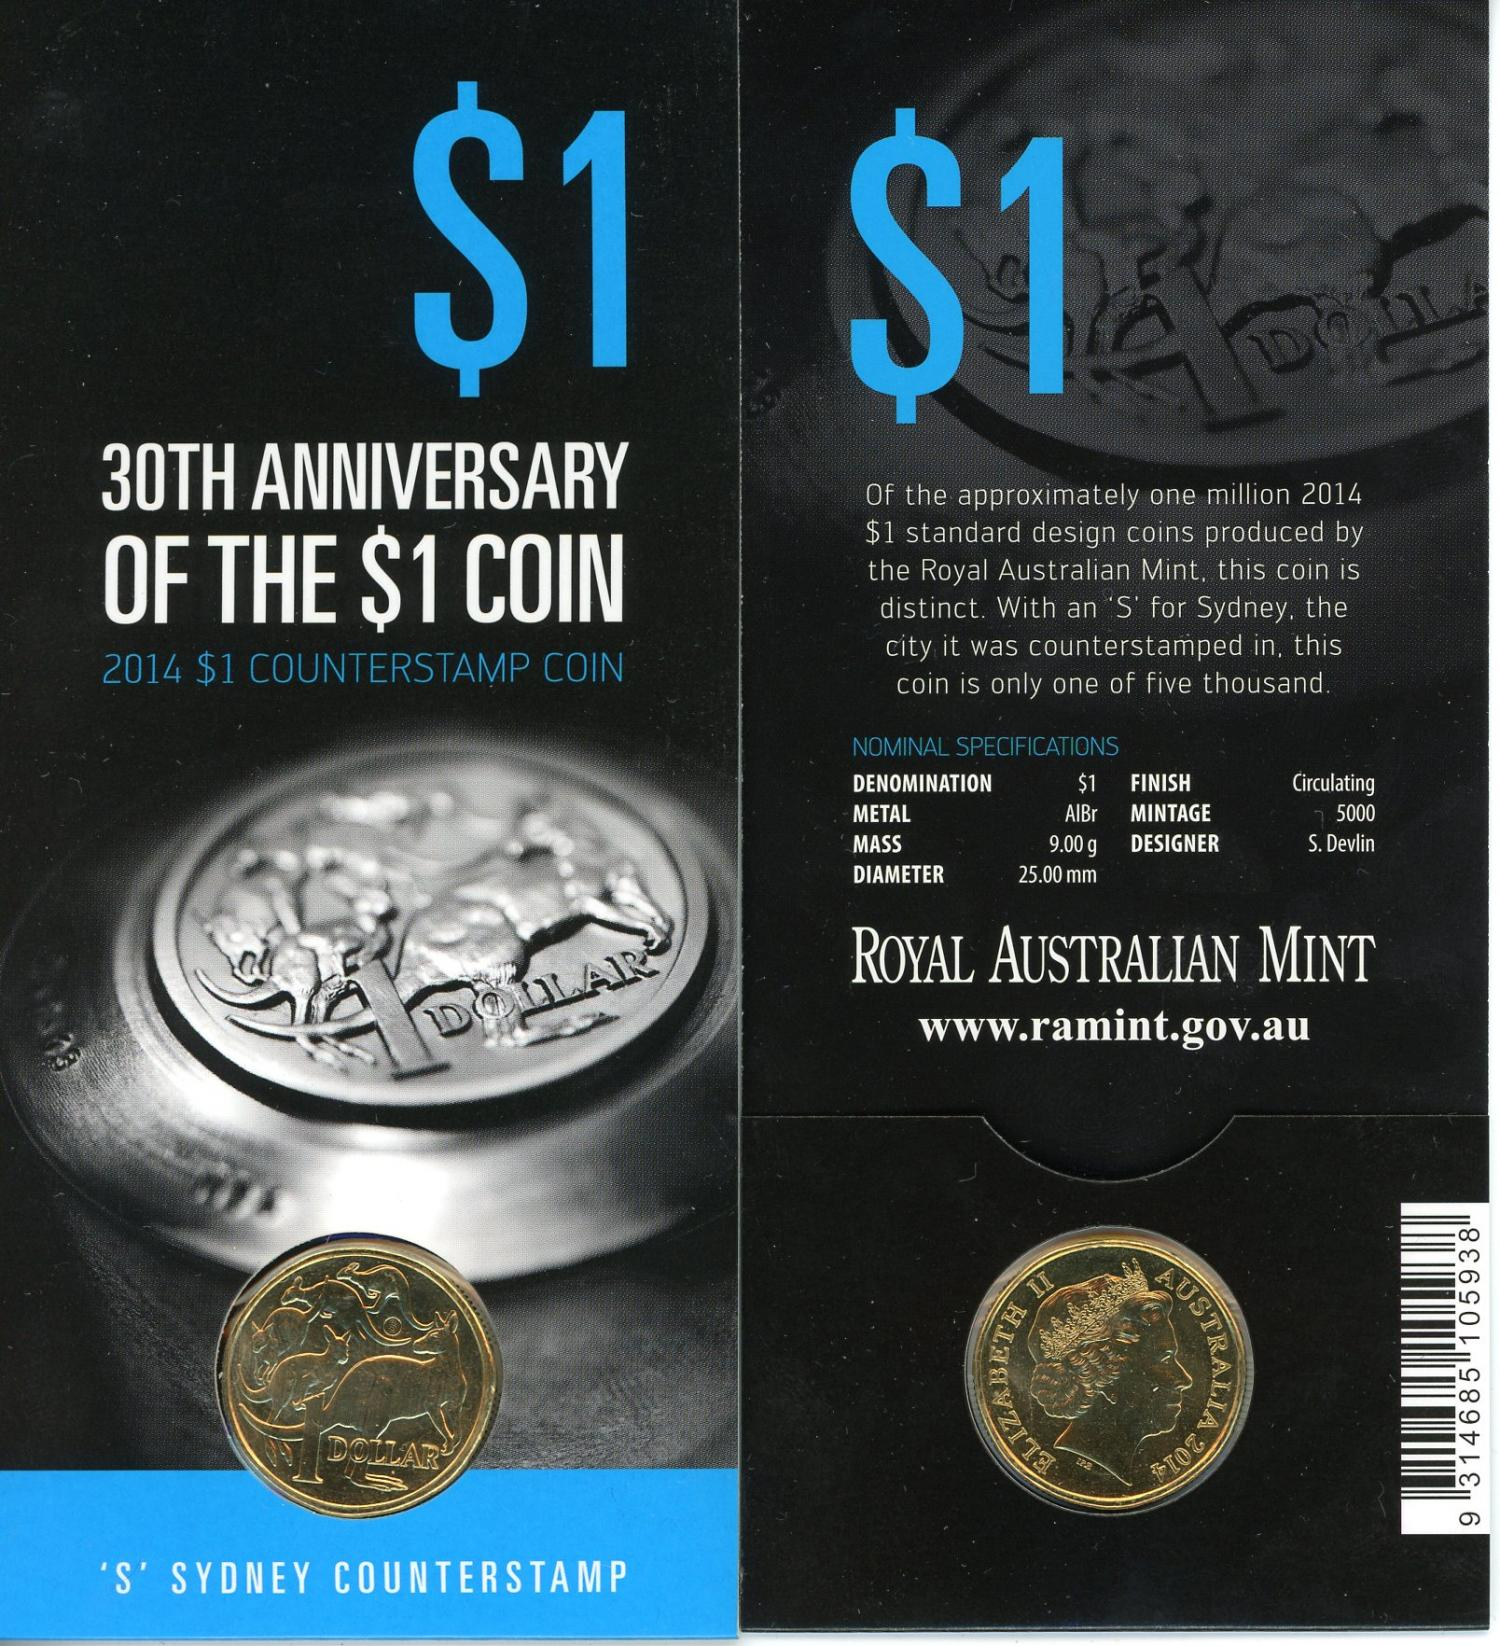 Thumbnail for 2014 30th Anniversary Sydney Counterstamp $1.00